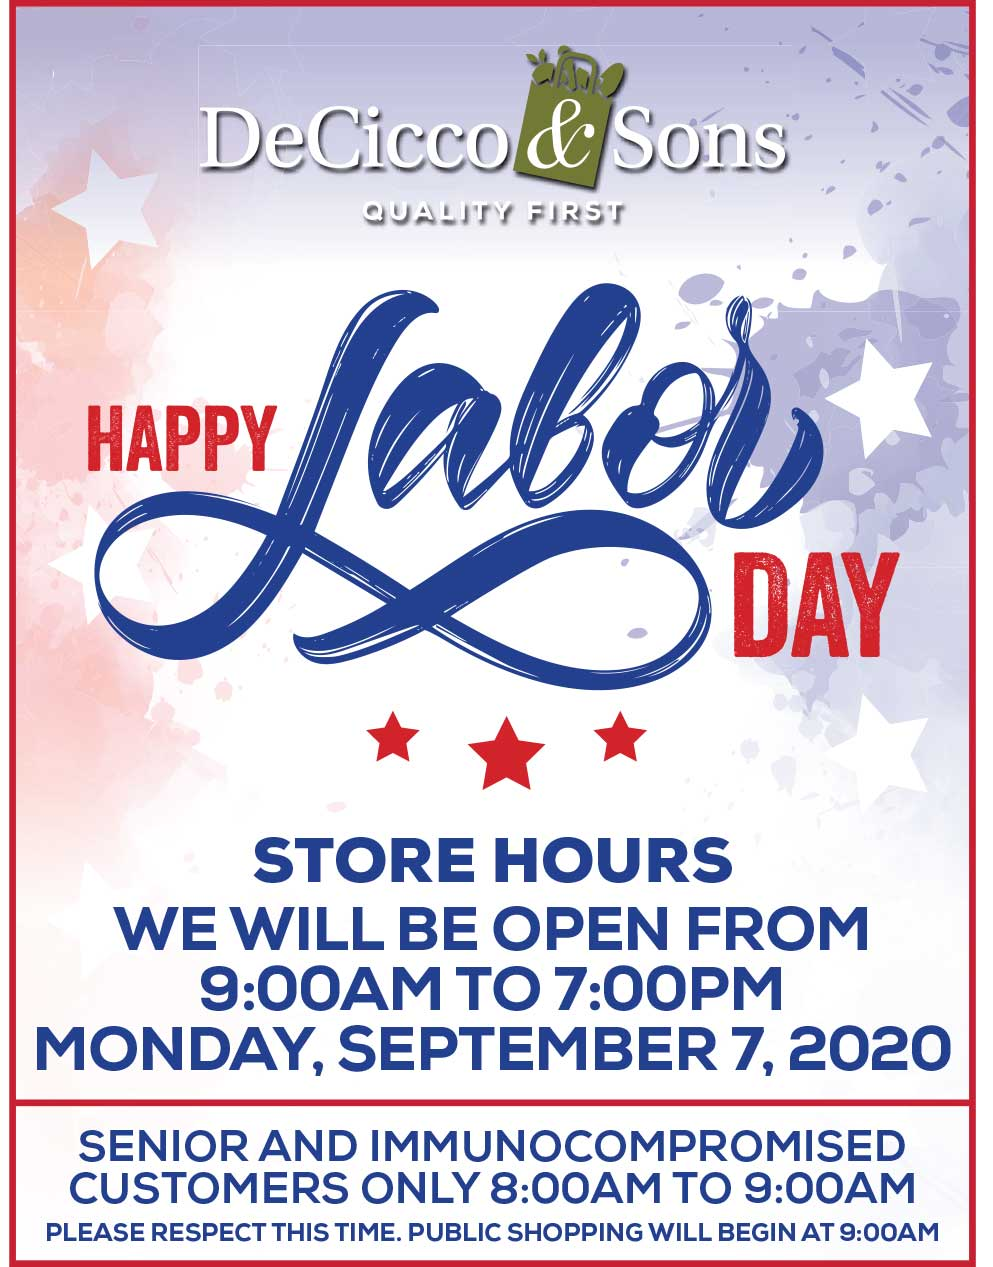 labor day hours open from 9am to 7pm monday september 7th 2020